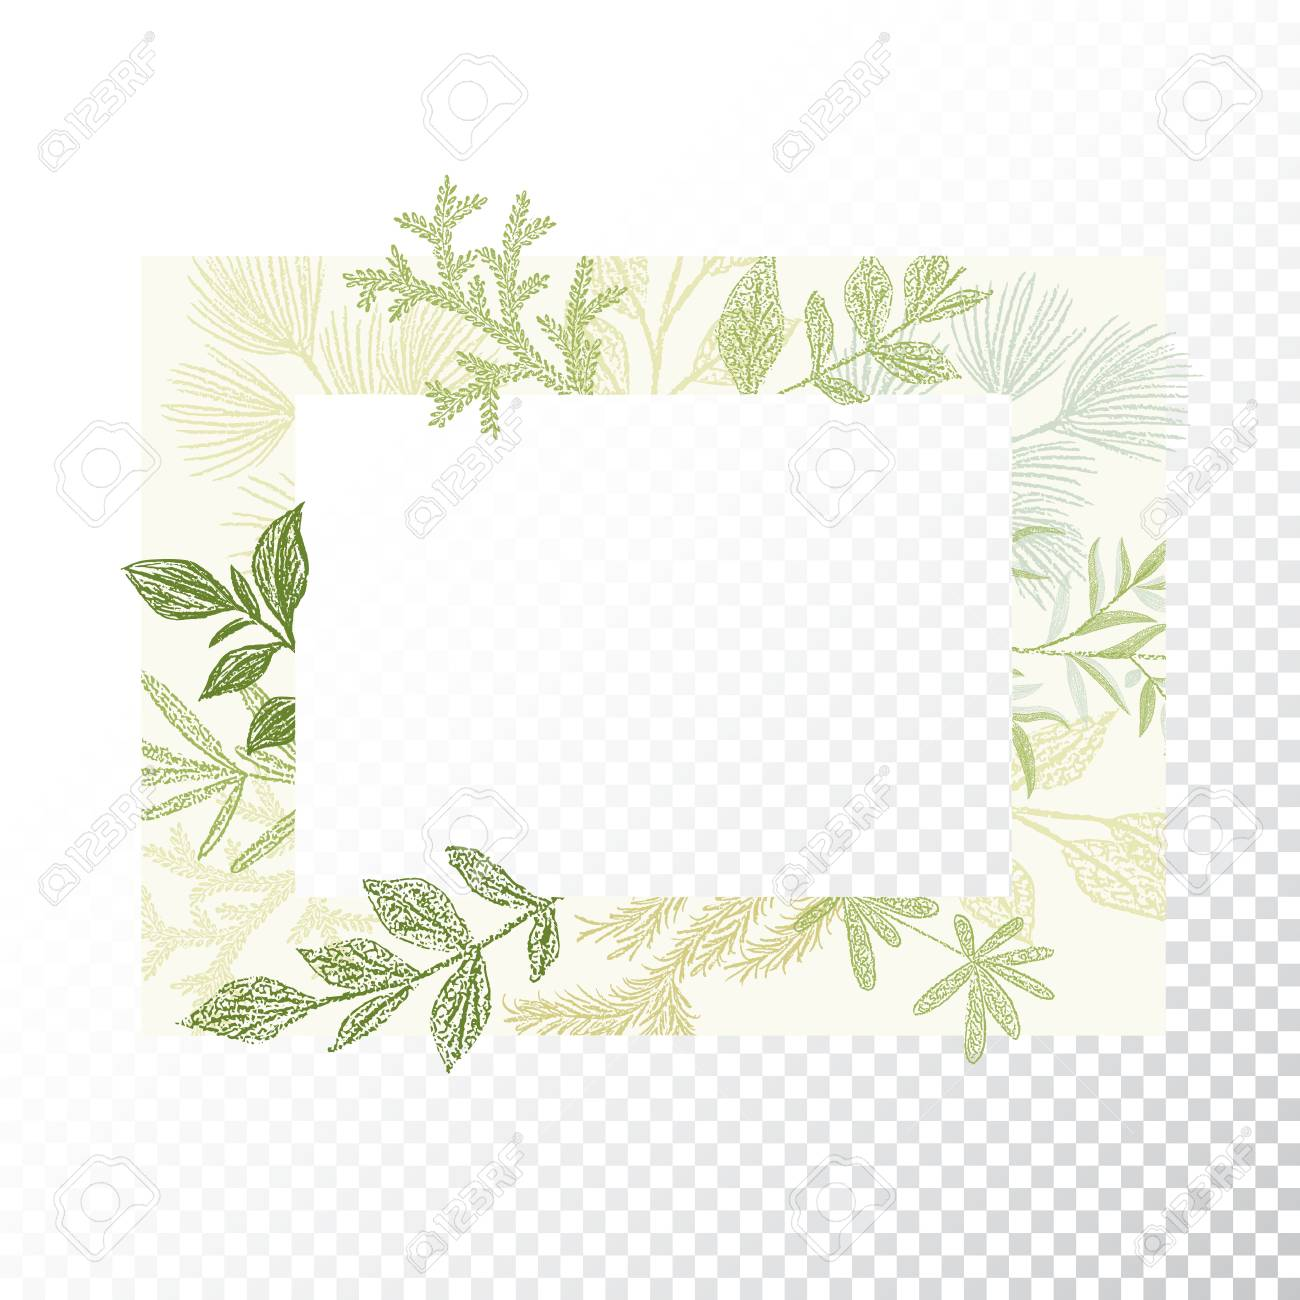 Rectangular Floral Frame Ornament Vector Green Branches And Leaves Border Transparent Background Stock